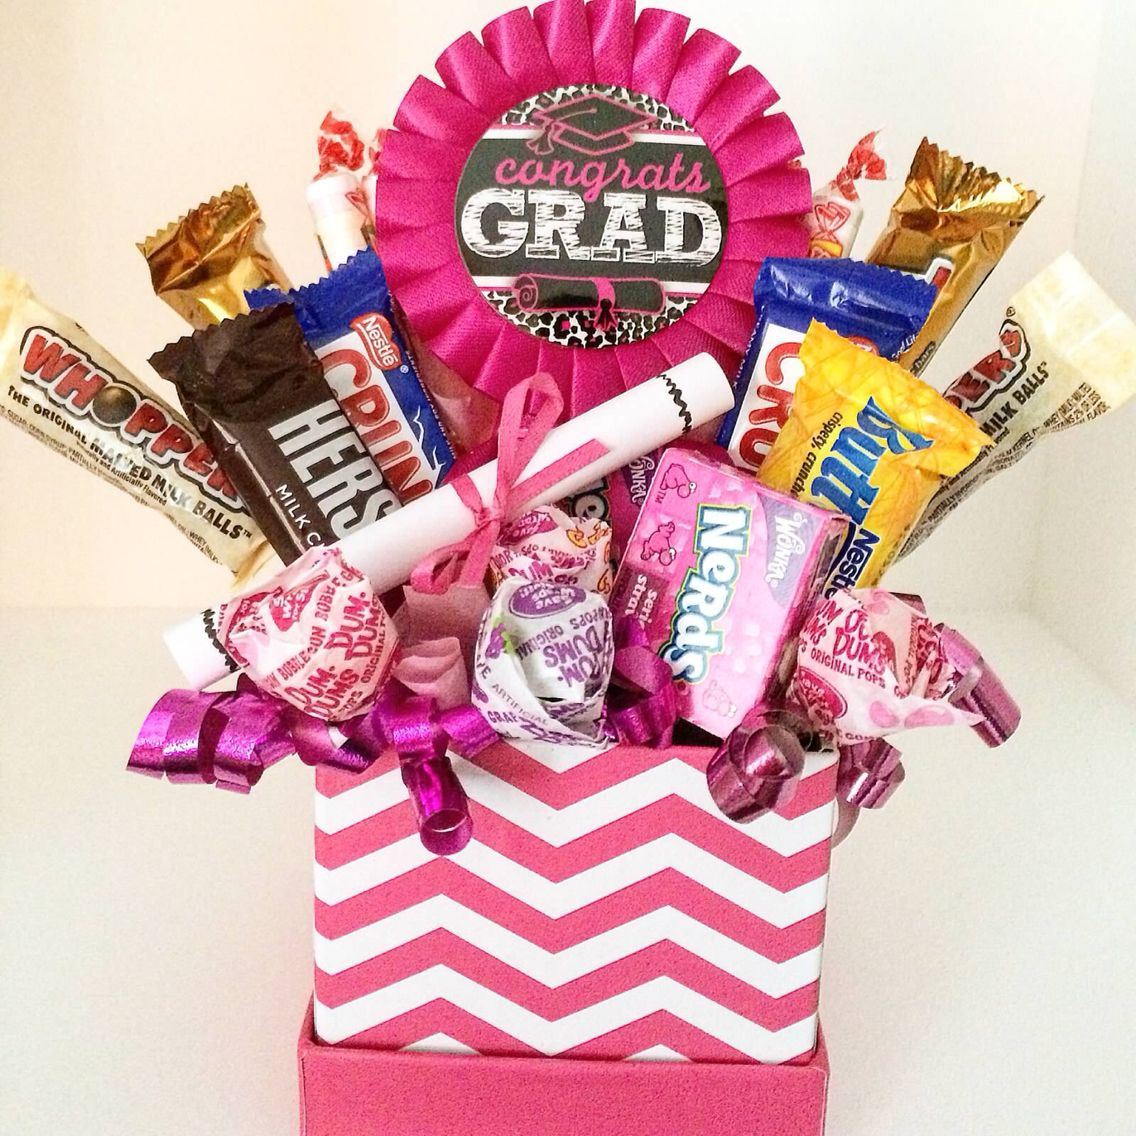 Bridal Shower Gift Basket Climbing On House Halloween: Pin By Dannyelle Linares On Graduation Gift